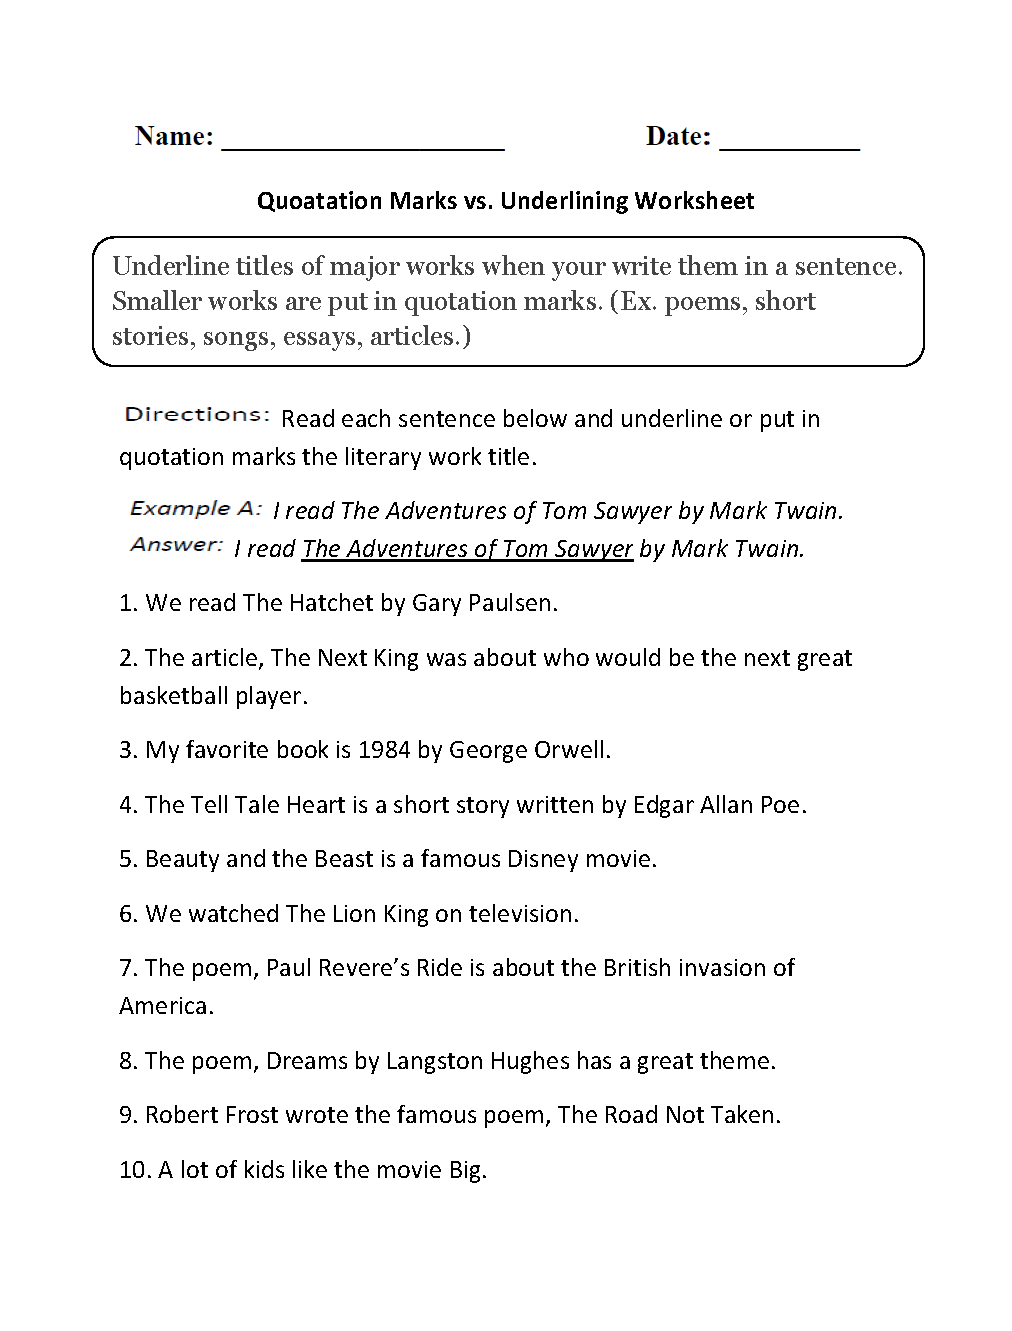 Quotation Marks Vs Underlining Worksheets  Grammar